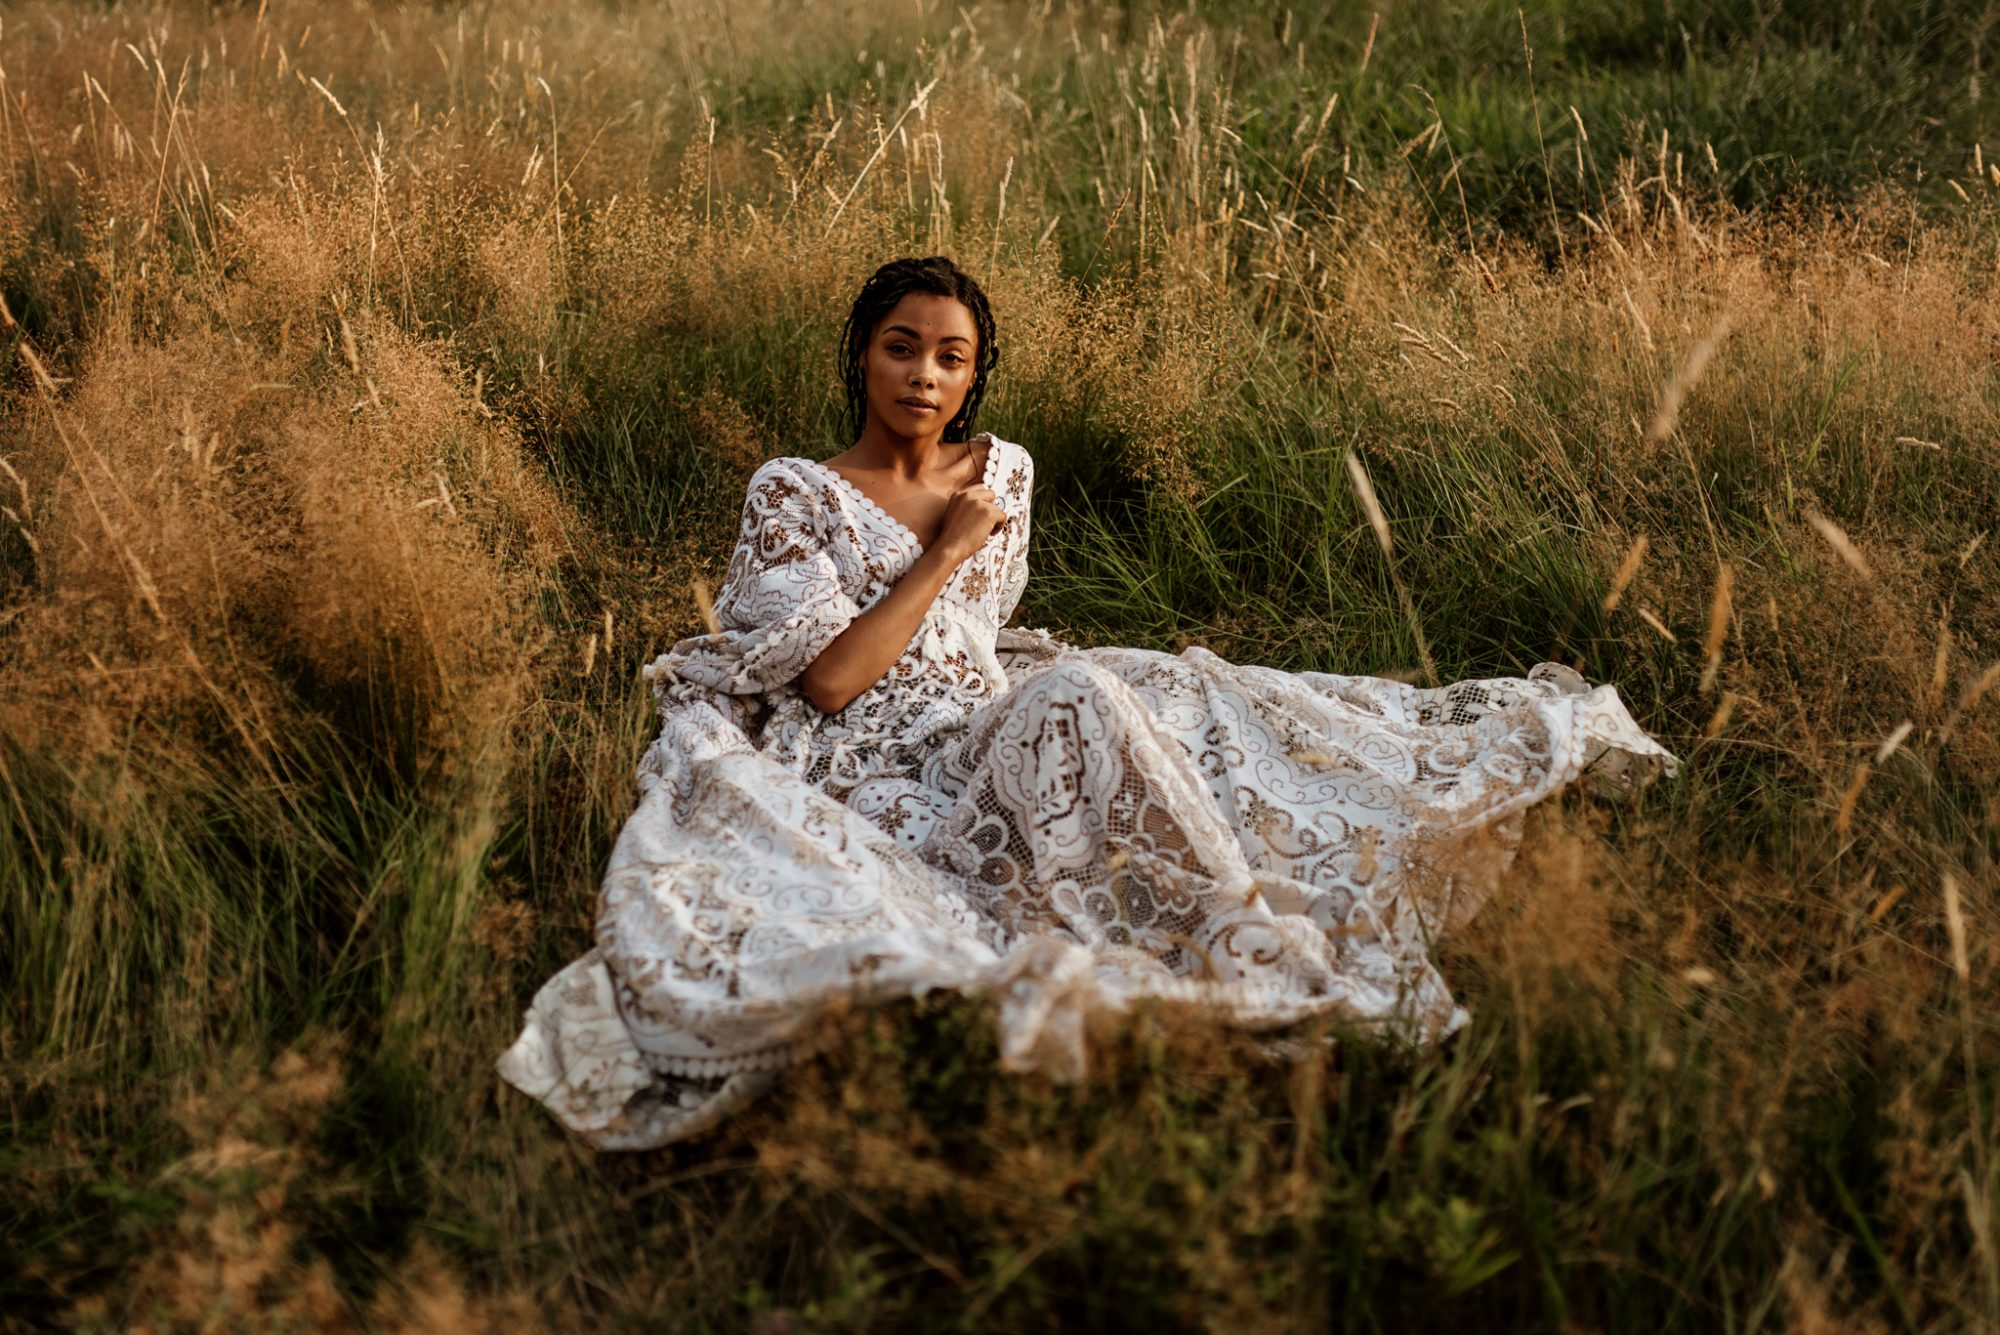 Woman in golden field wearing vintage lace reclamation design company gown for lifestyle photoshoot